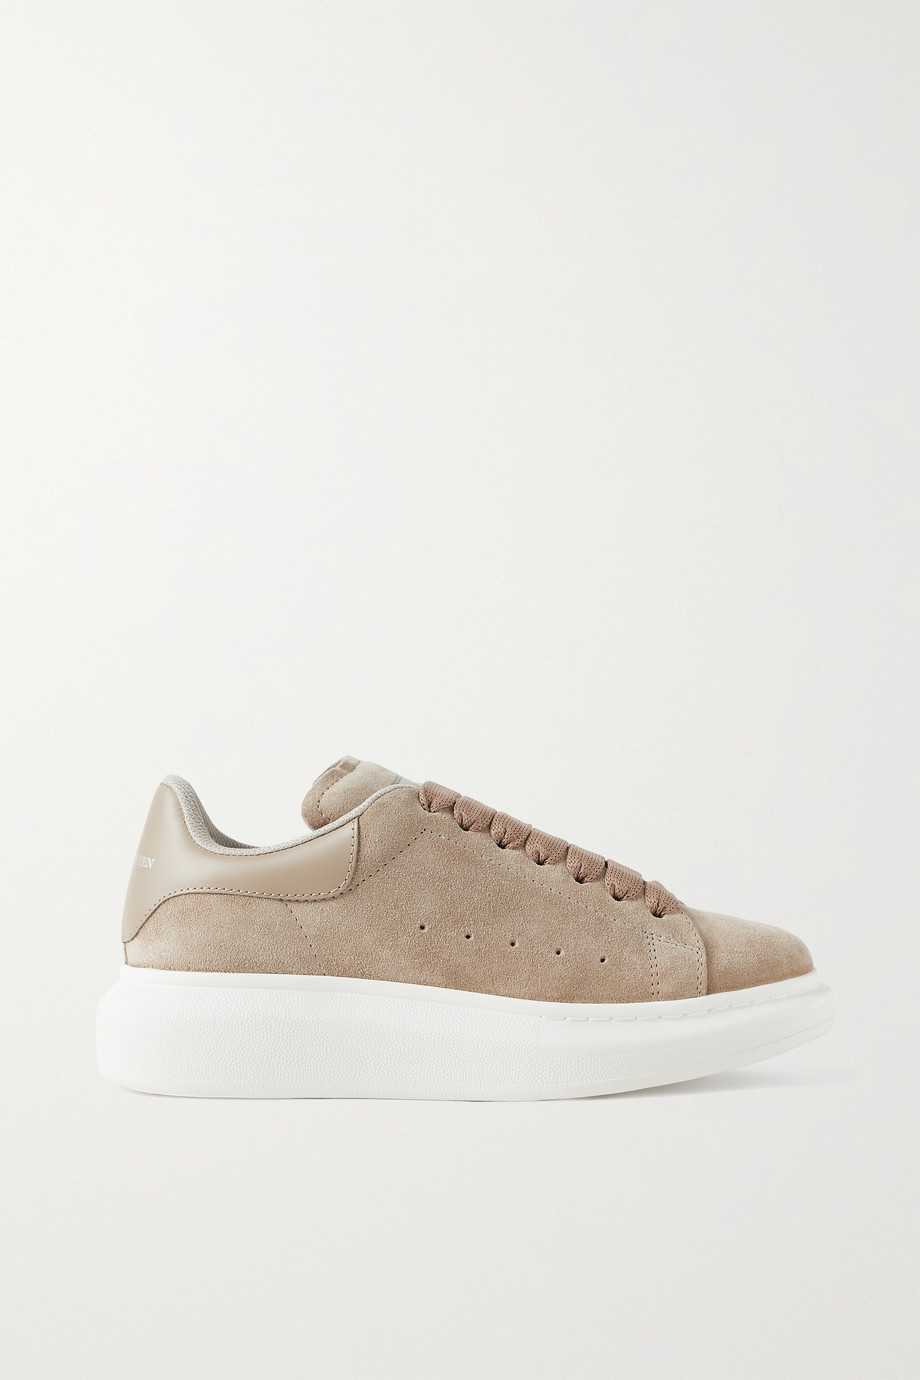 ALEXANDER MCQUEEN Leather-trimmed suede exaggerated-sole sneakers